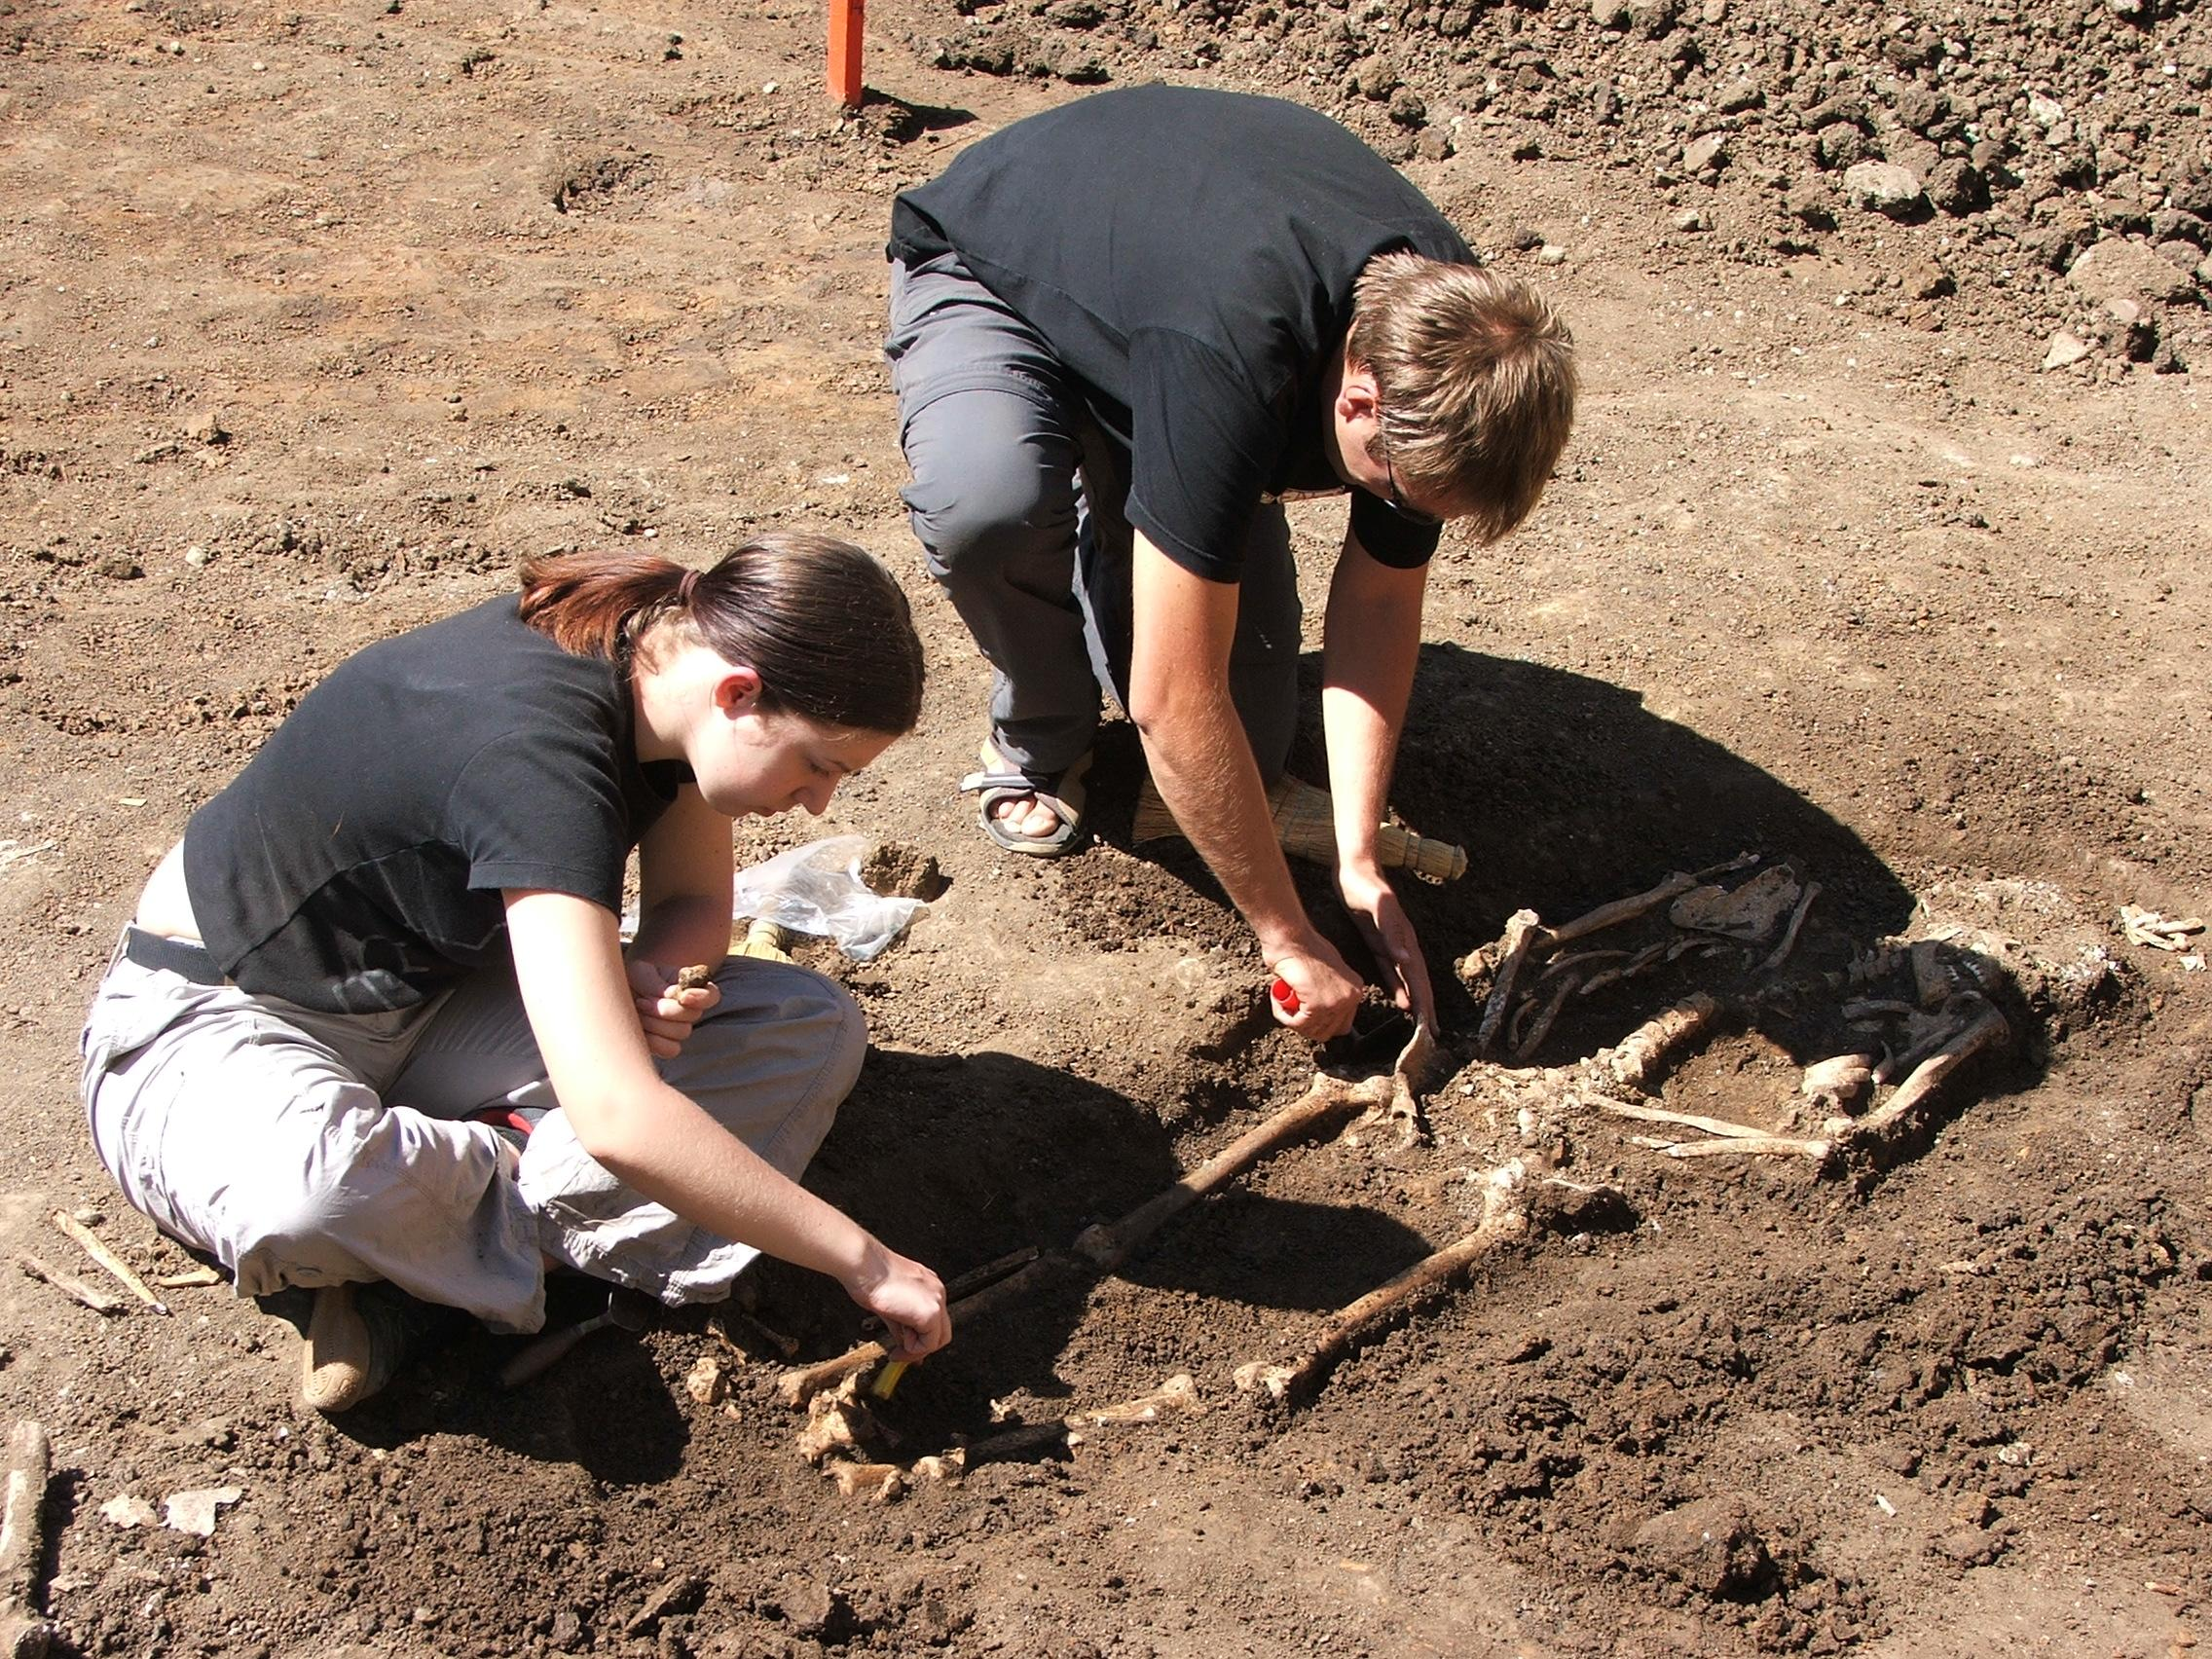 A group of Archaeology volunteers in Romania digging on site